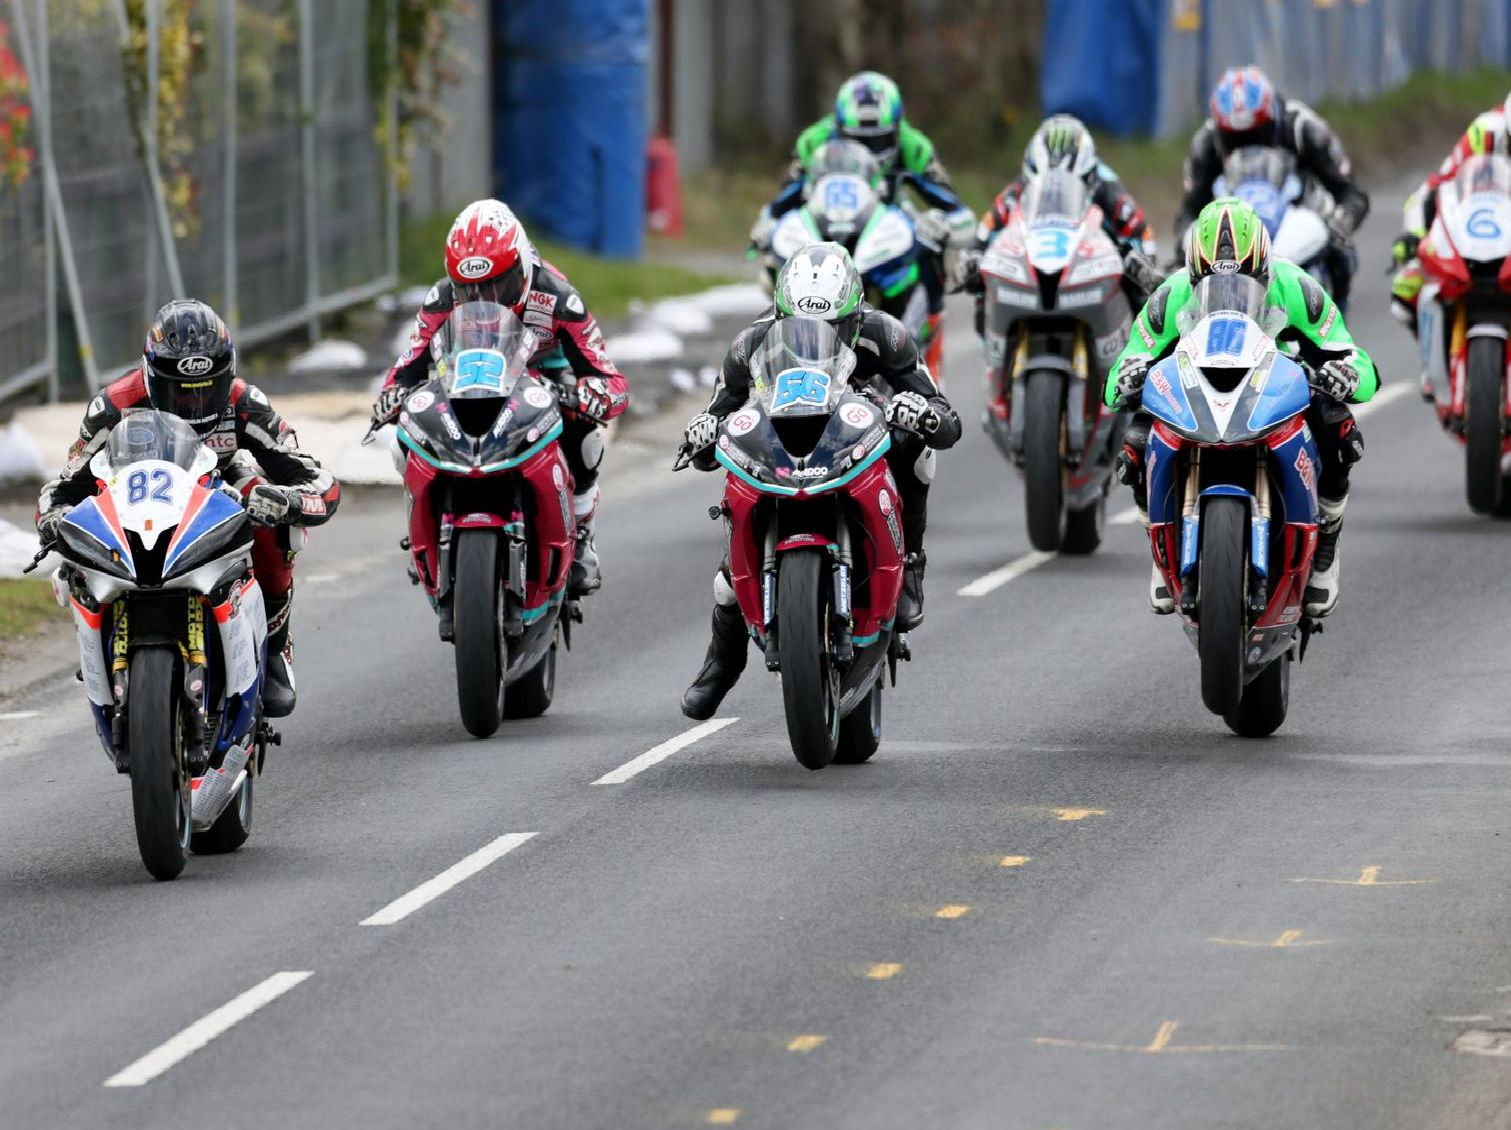 The start of the Supersport race at the Cookstown 100 in 2018.